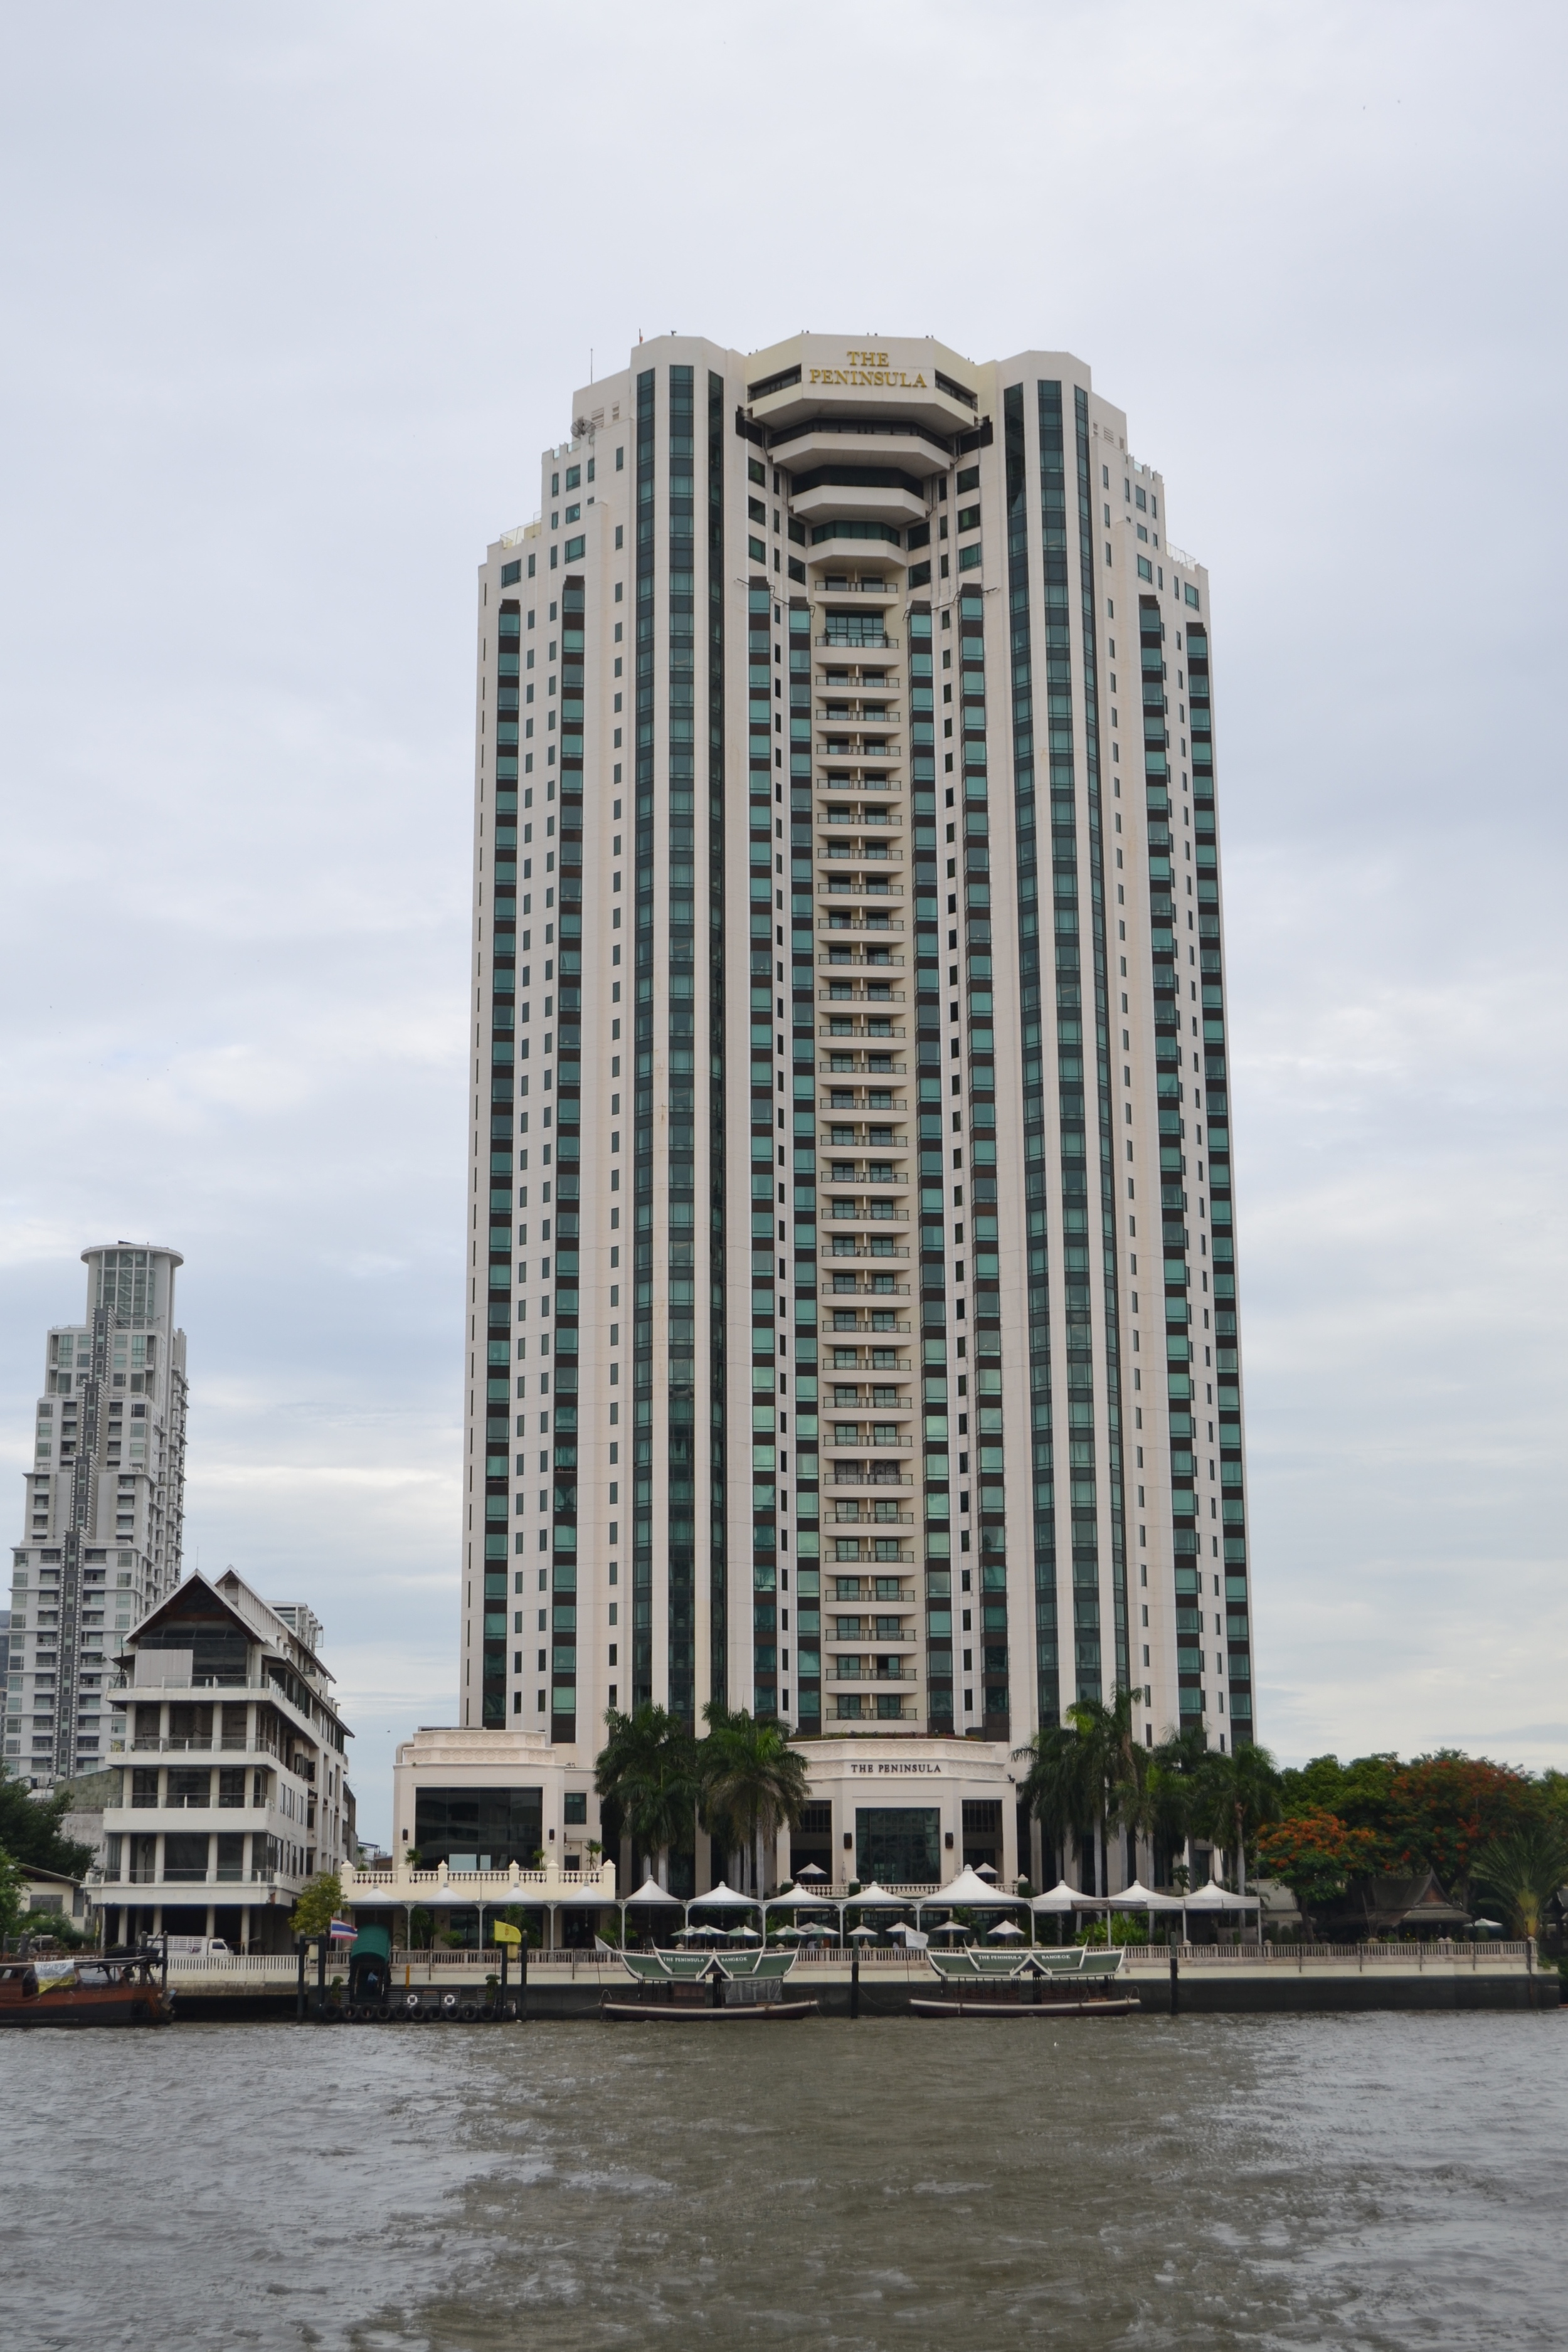 View of our hotel from the river